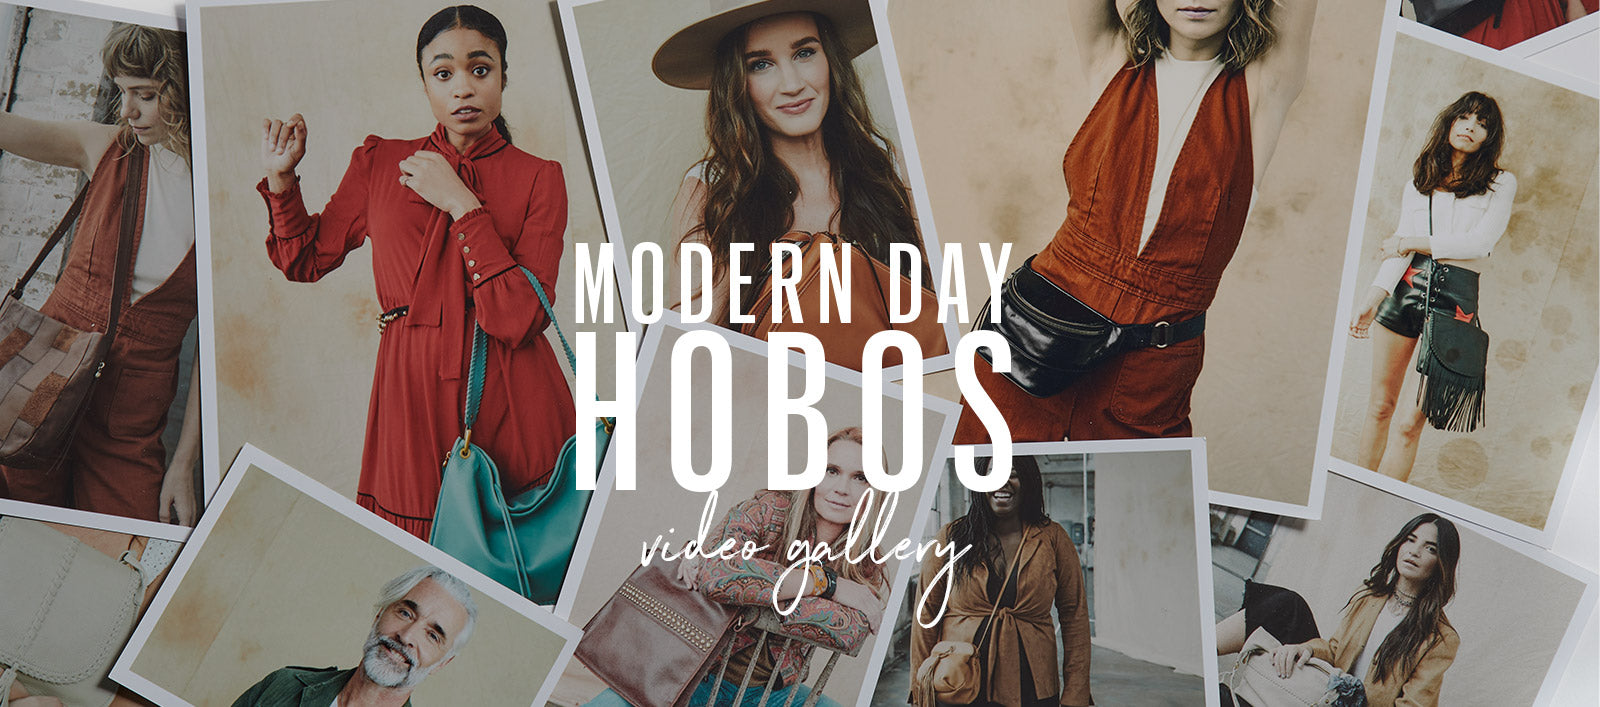 Watch videos of our Modern Day Hobos - Individial. Authentic. Original.